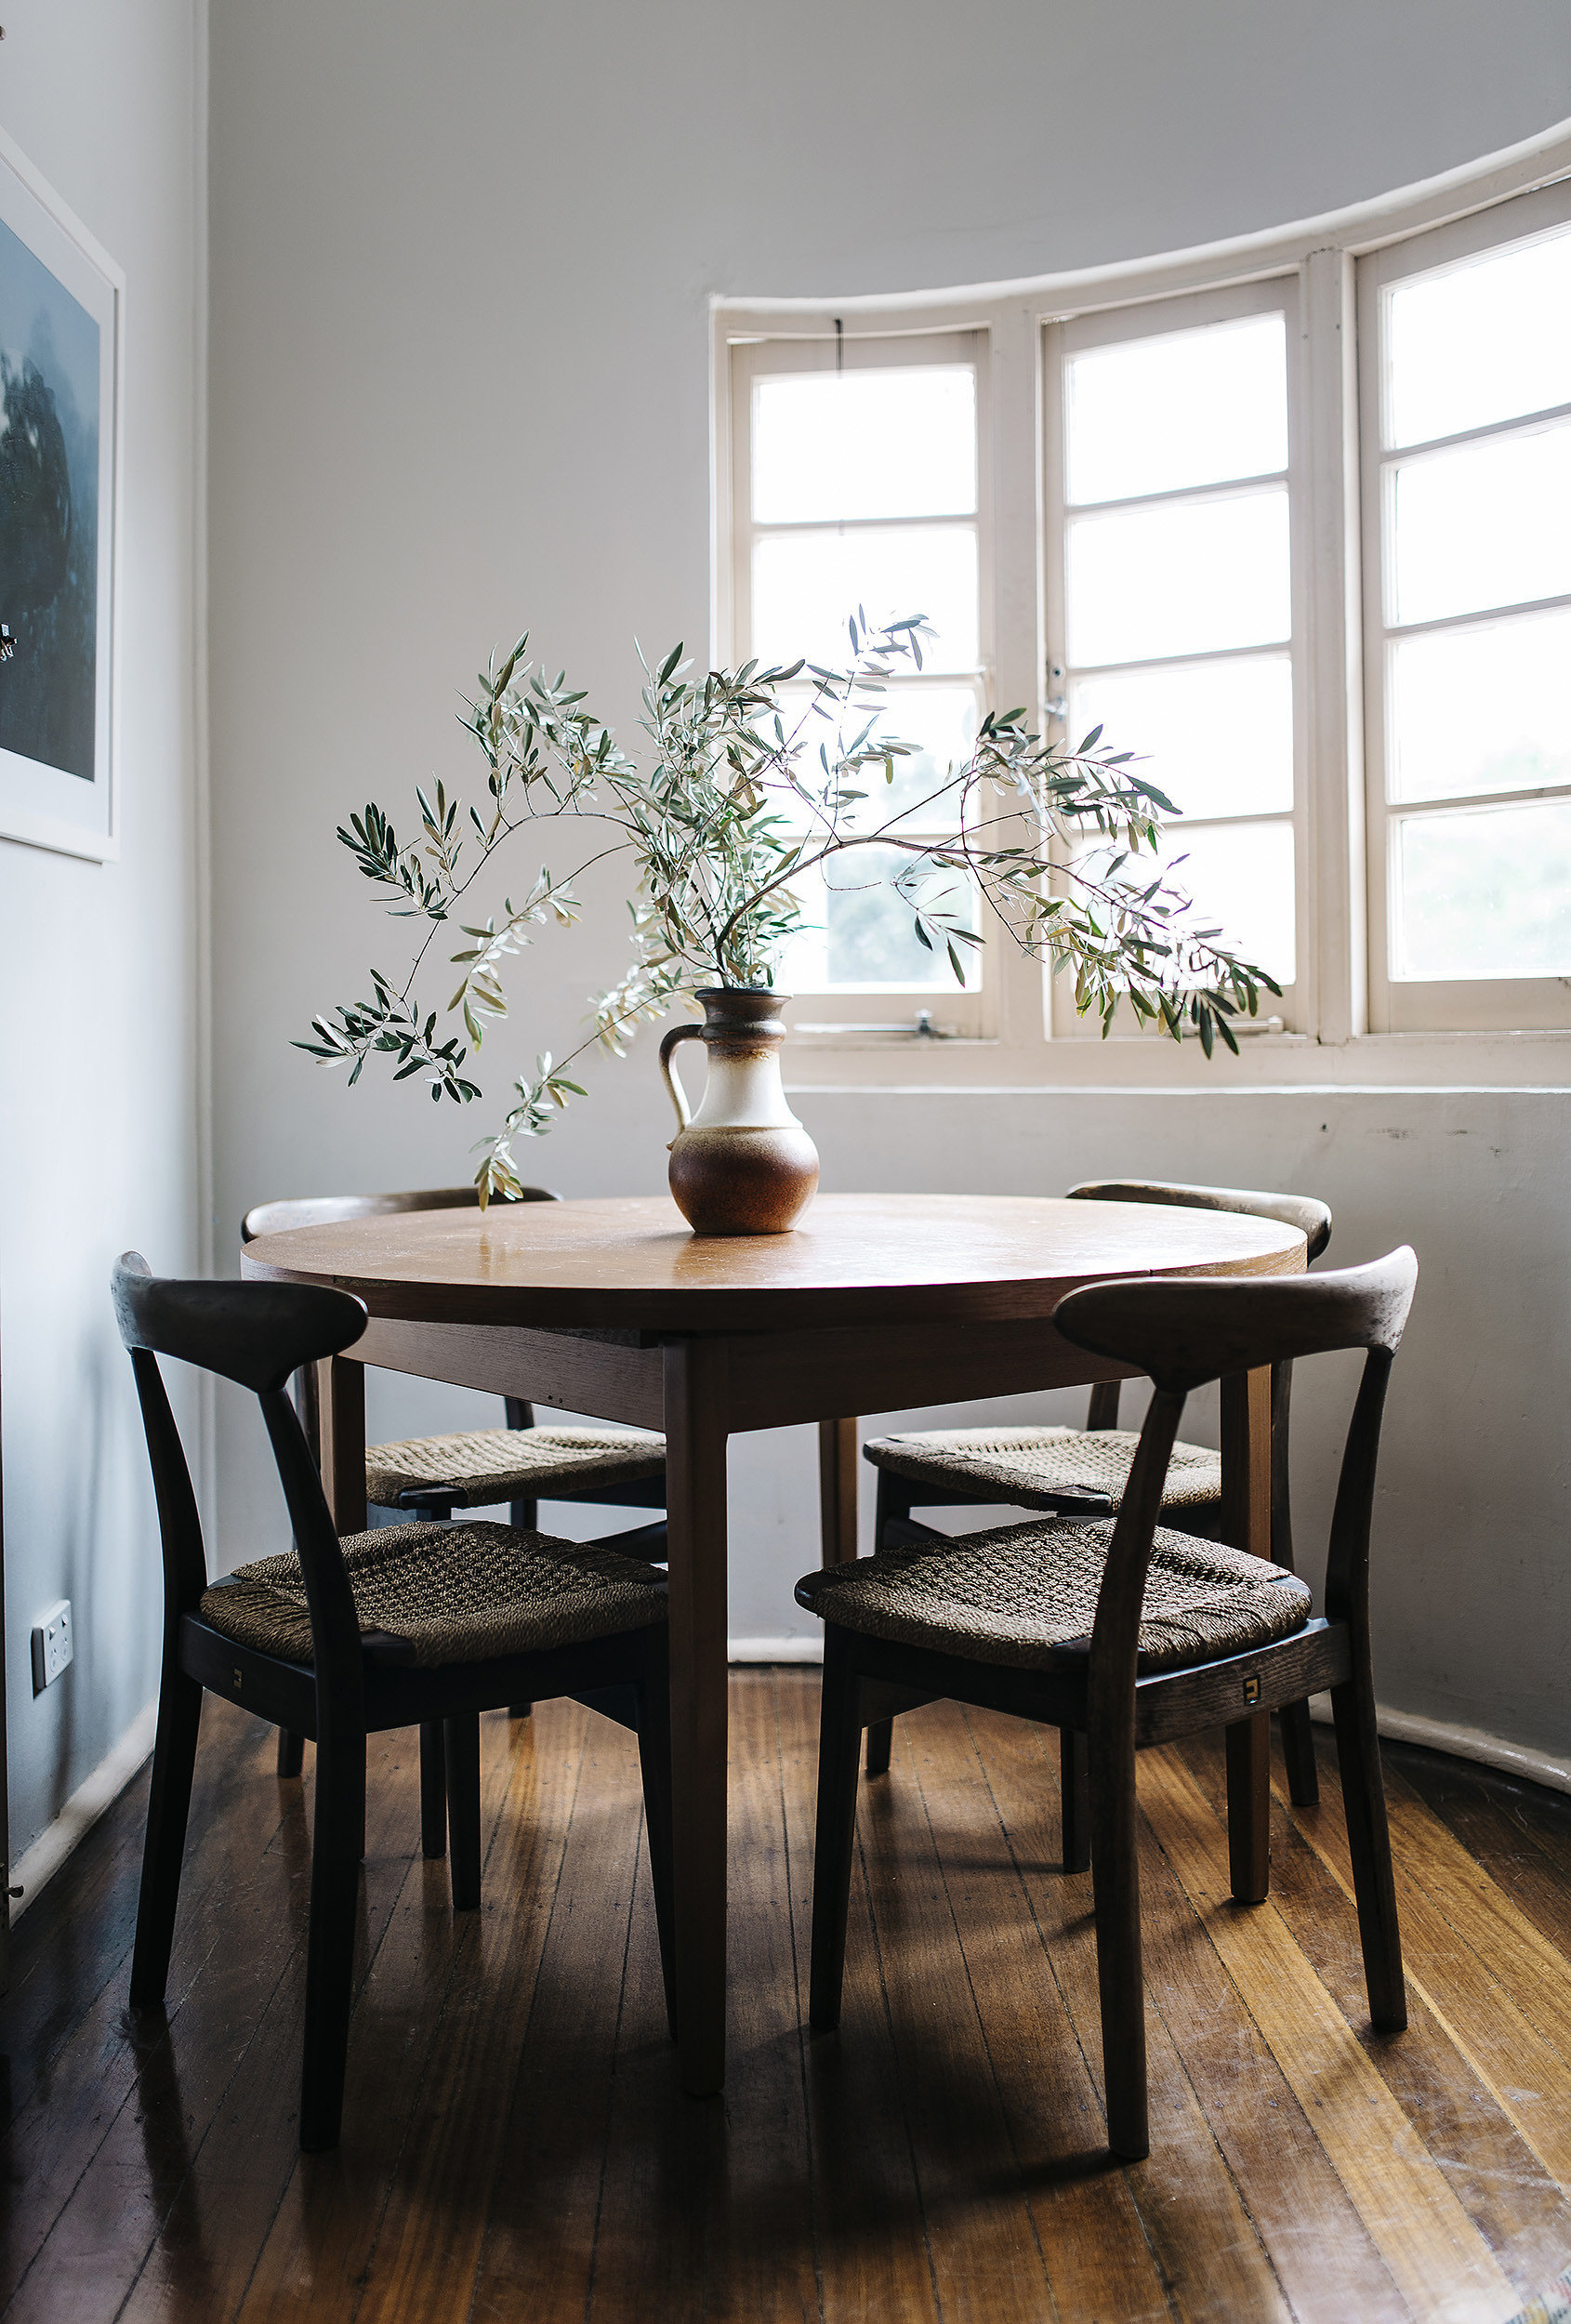 No need for curtains or extraneous decor in this unfussy for Dining room ideas australia